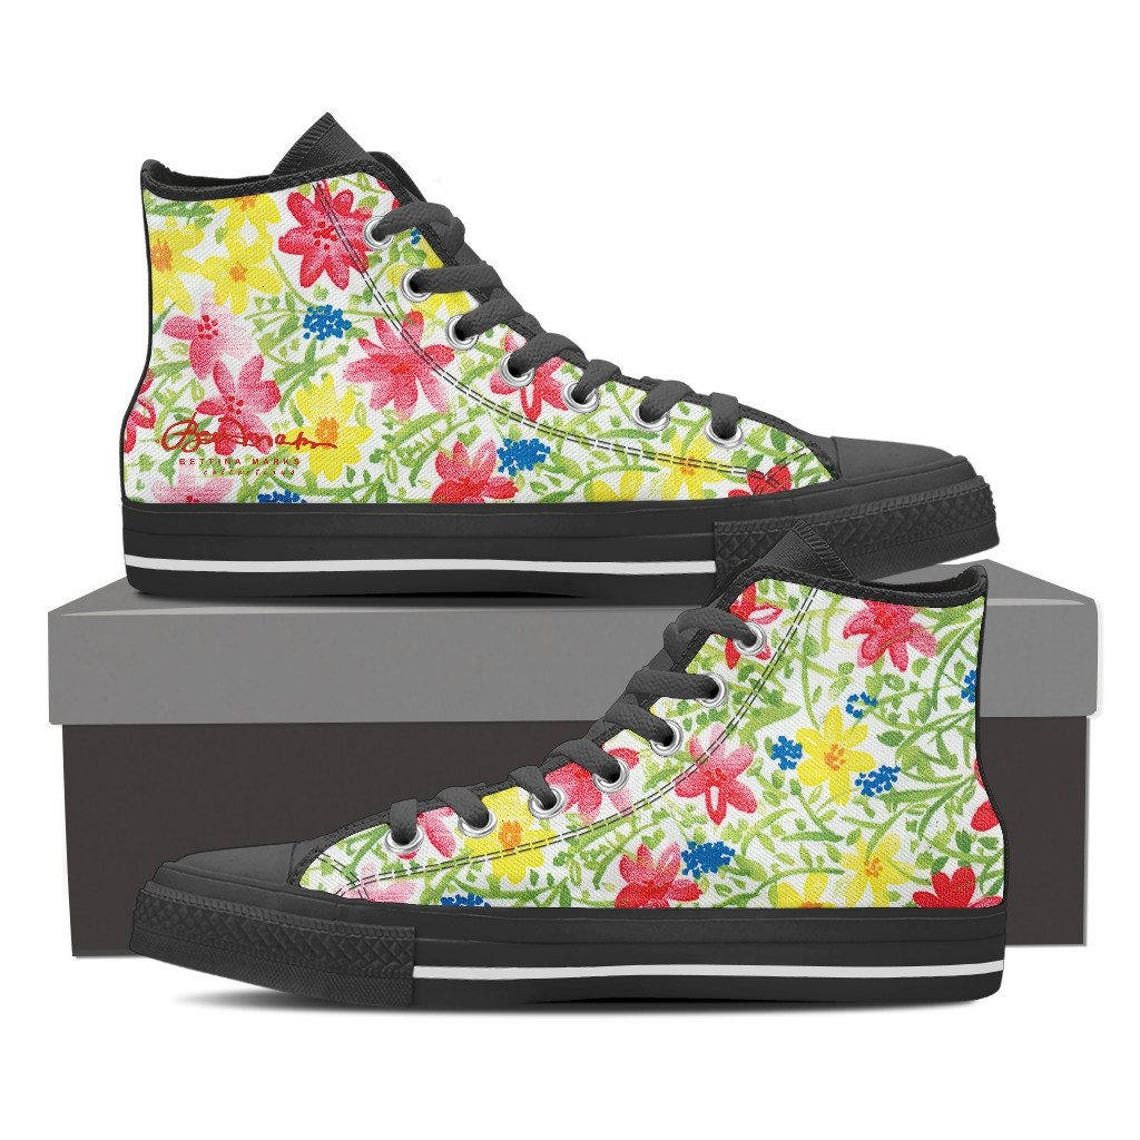 Wildflower Women's Black and White High Top Canvas Sneakers